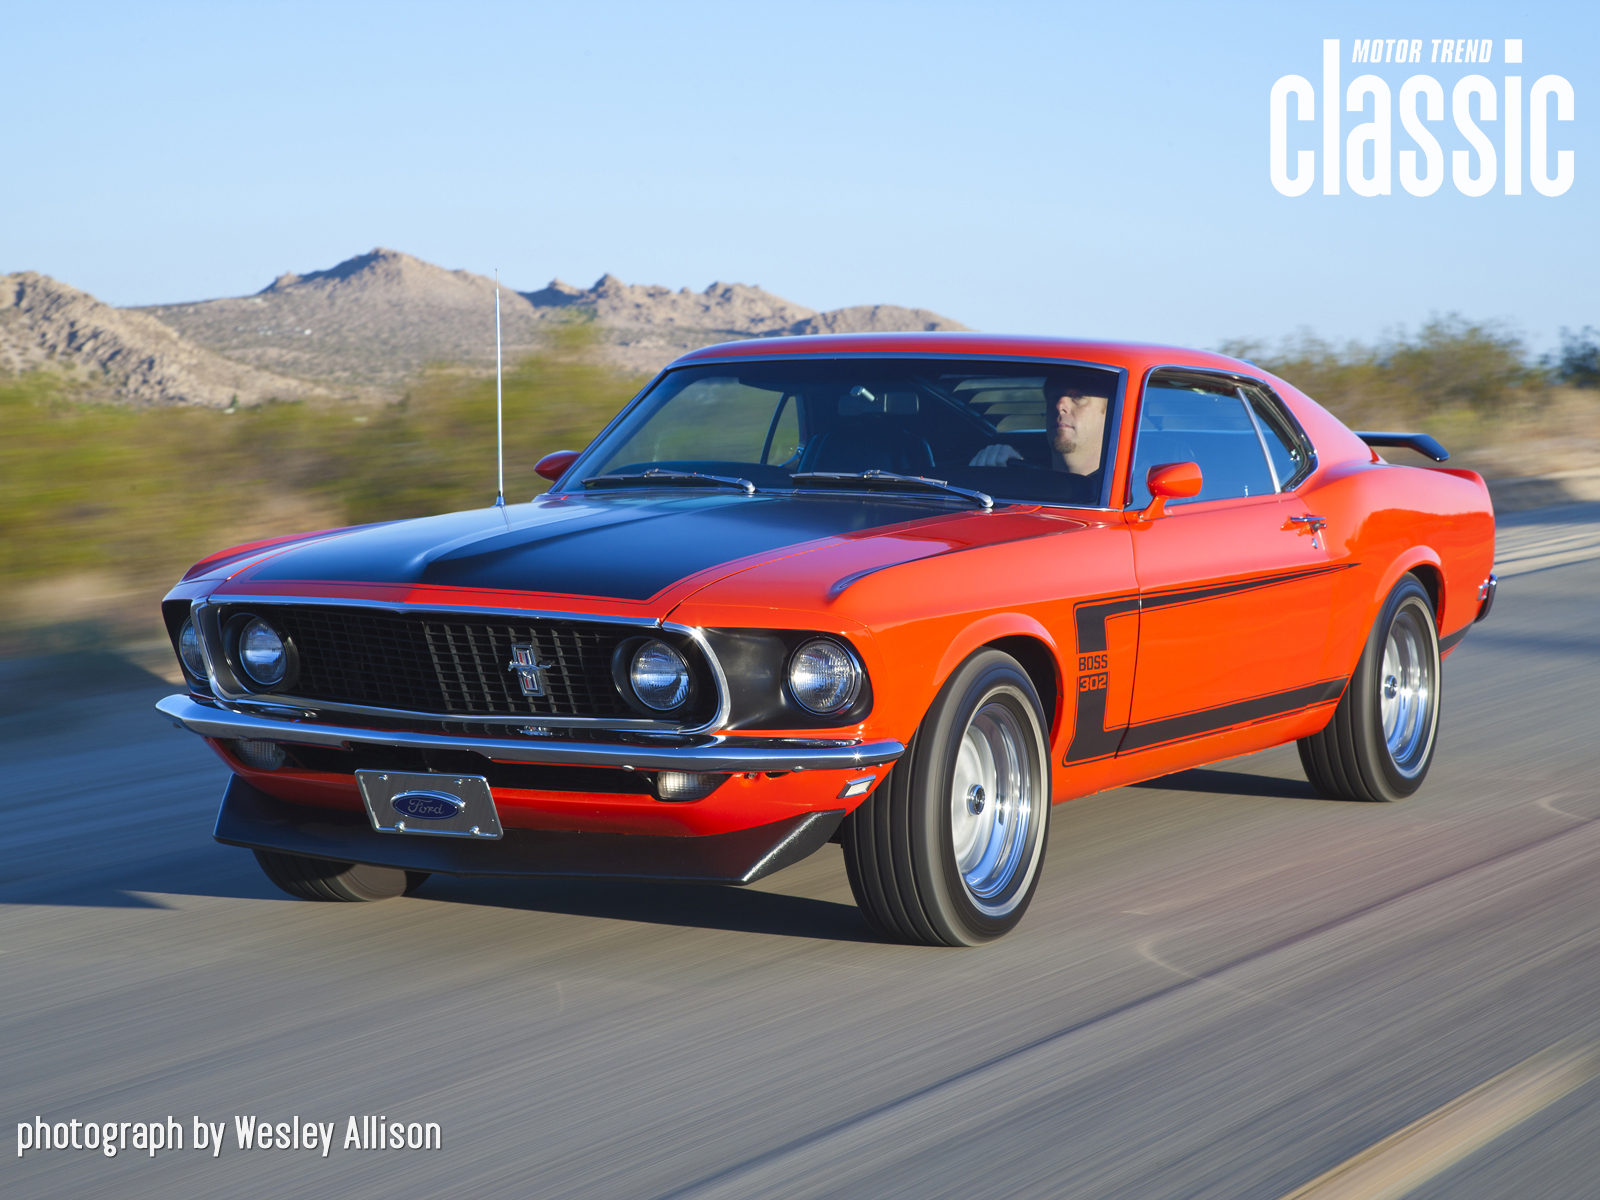 1969 Ford Mustang Boss 302 Wallpaper Gallery Photo Gallery   Motor 1600x1200